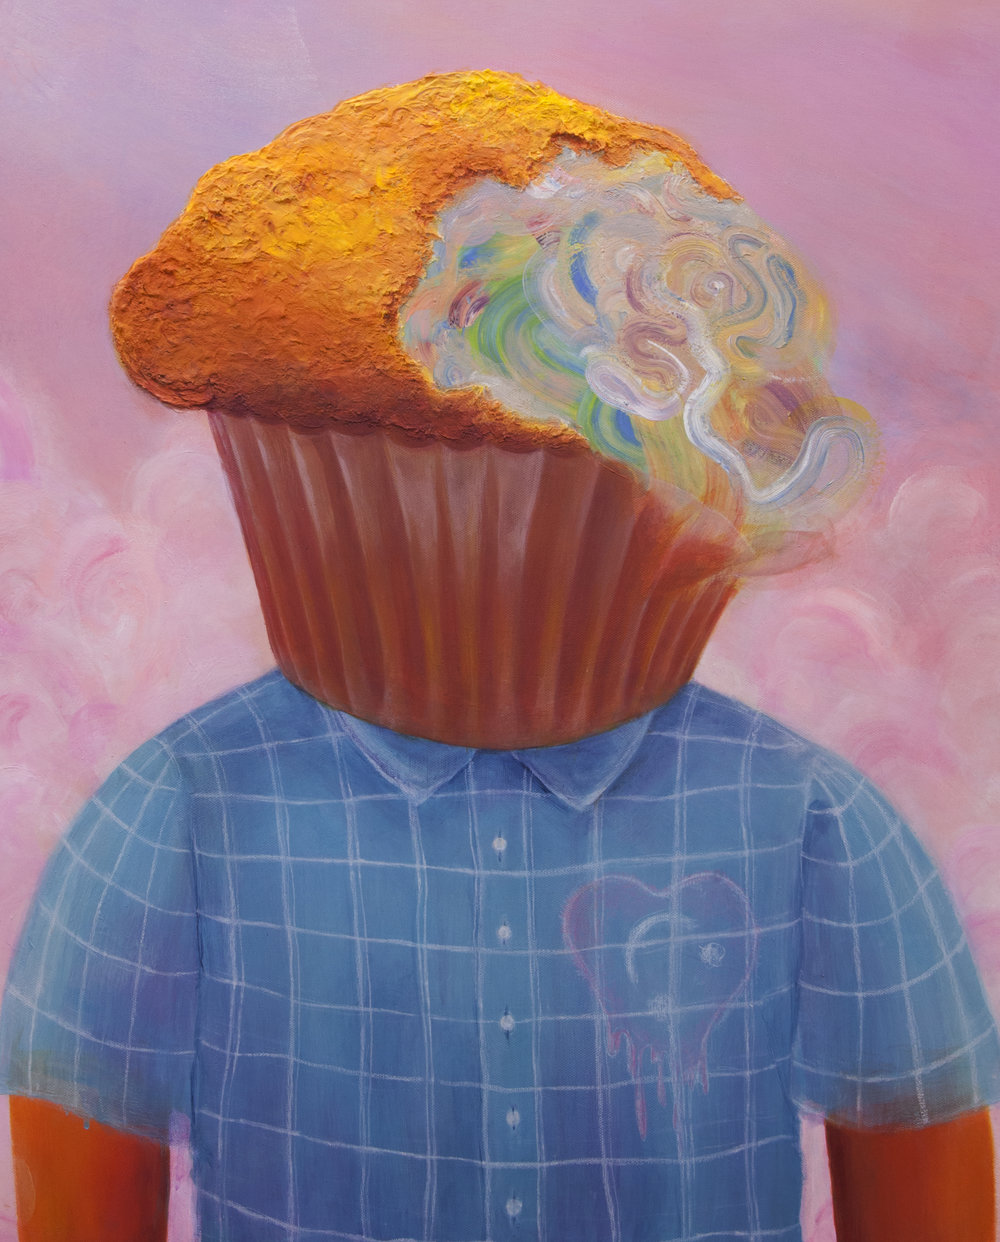 I will be Your Muffin Man with Any Flavor You Want